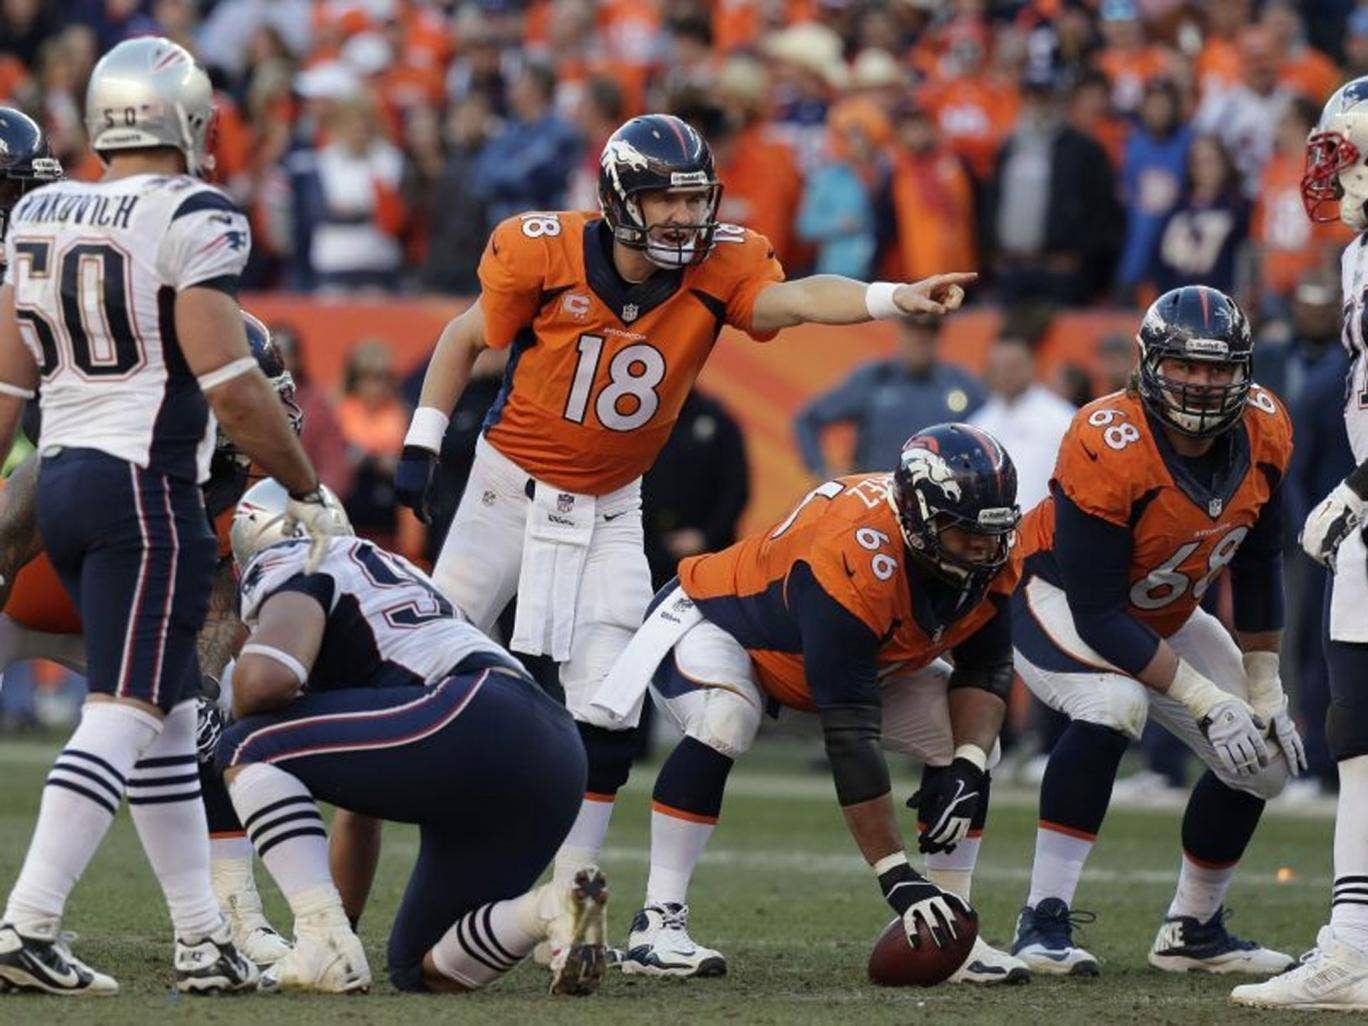 Fronting up: Denver Broncos' Peyton Manning will face Seattle Seahawks